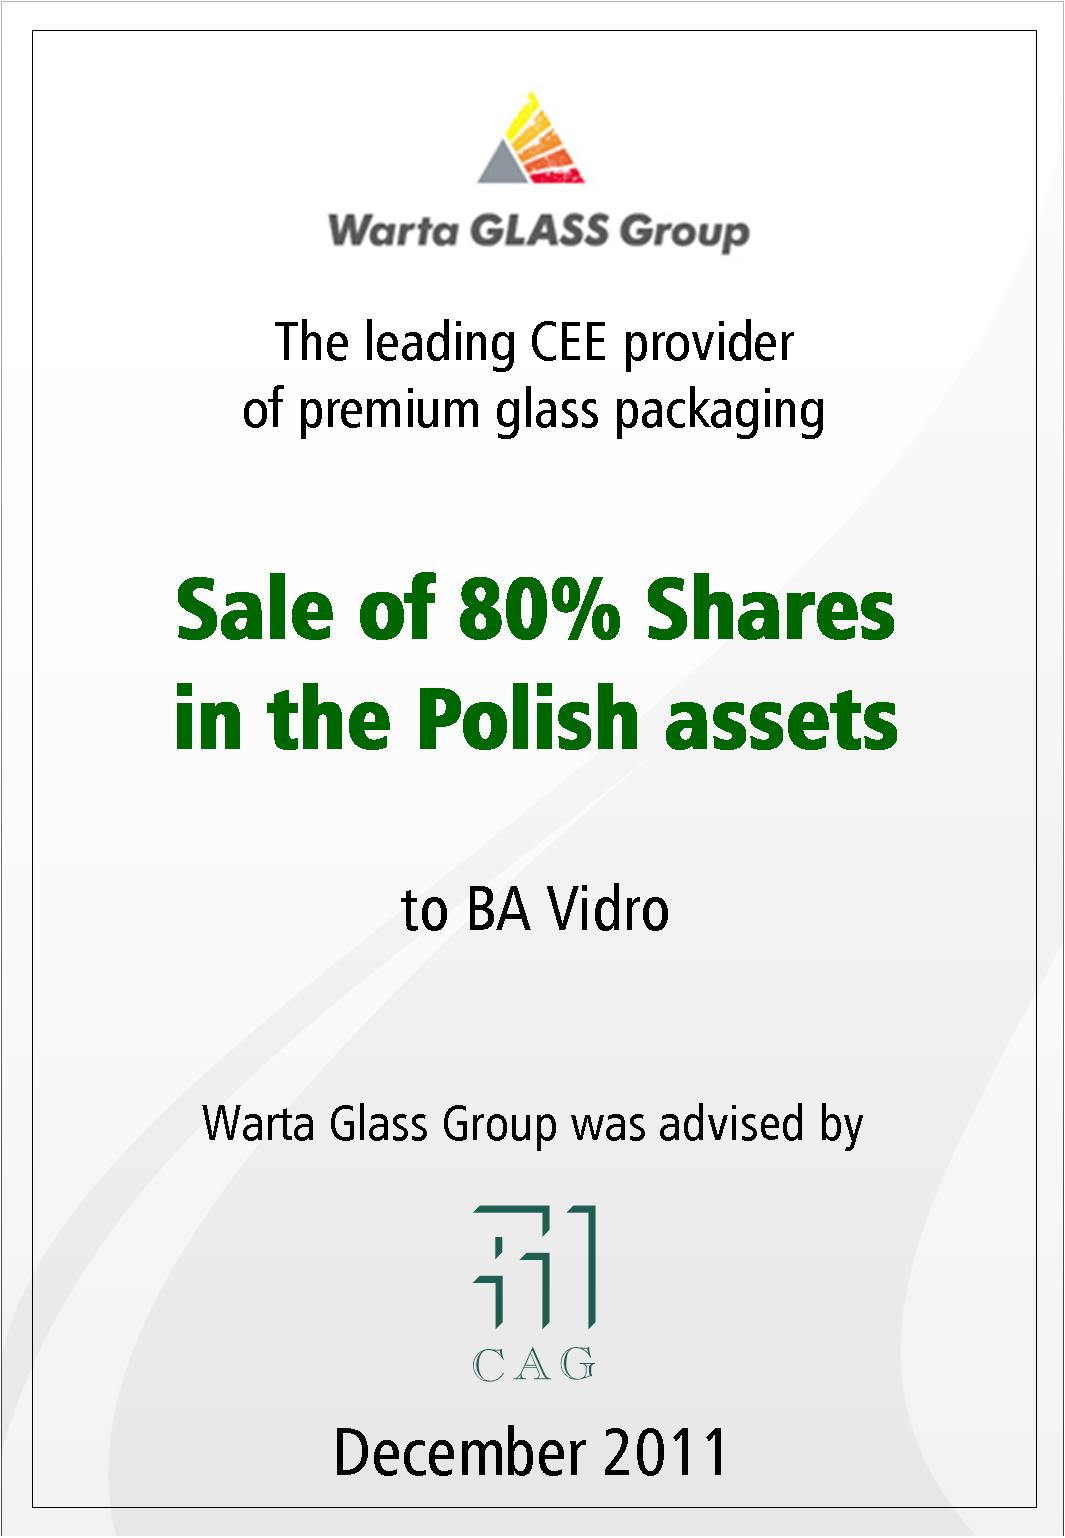 Warta GLASS Group